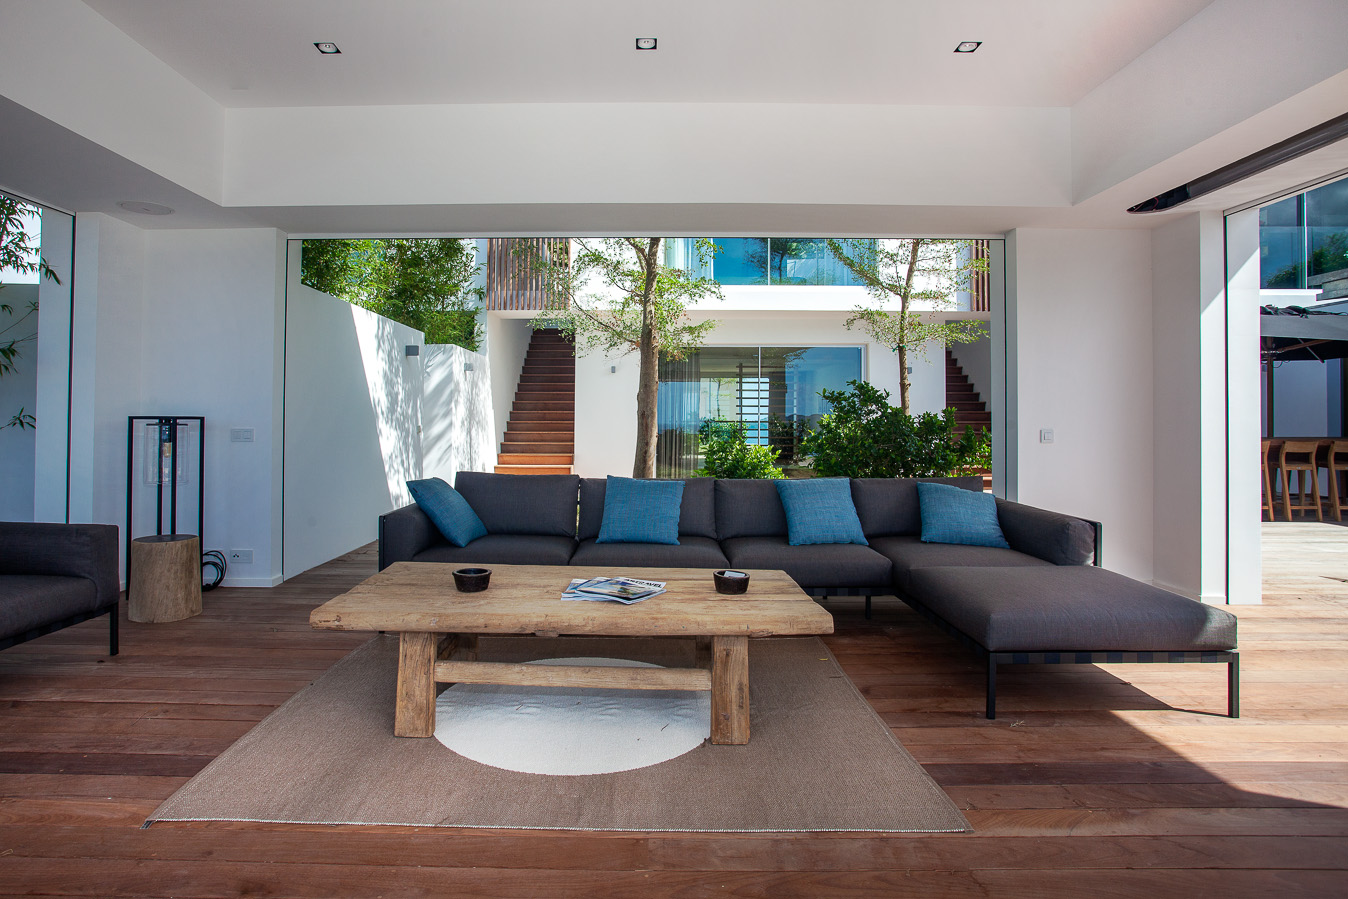 Villa Wings - 4 Bedroom Villa for Rent St Barth Ideal for Architecture Lovers - Living room